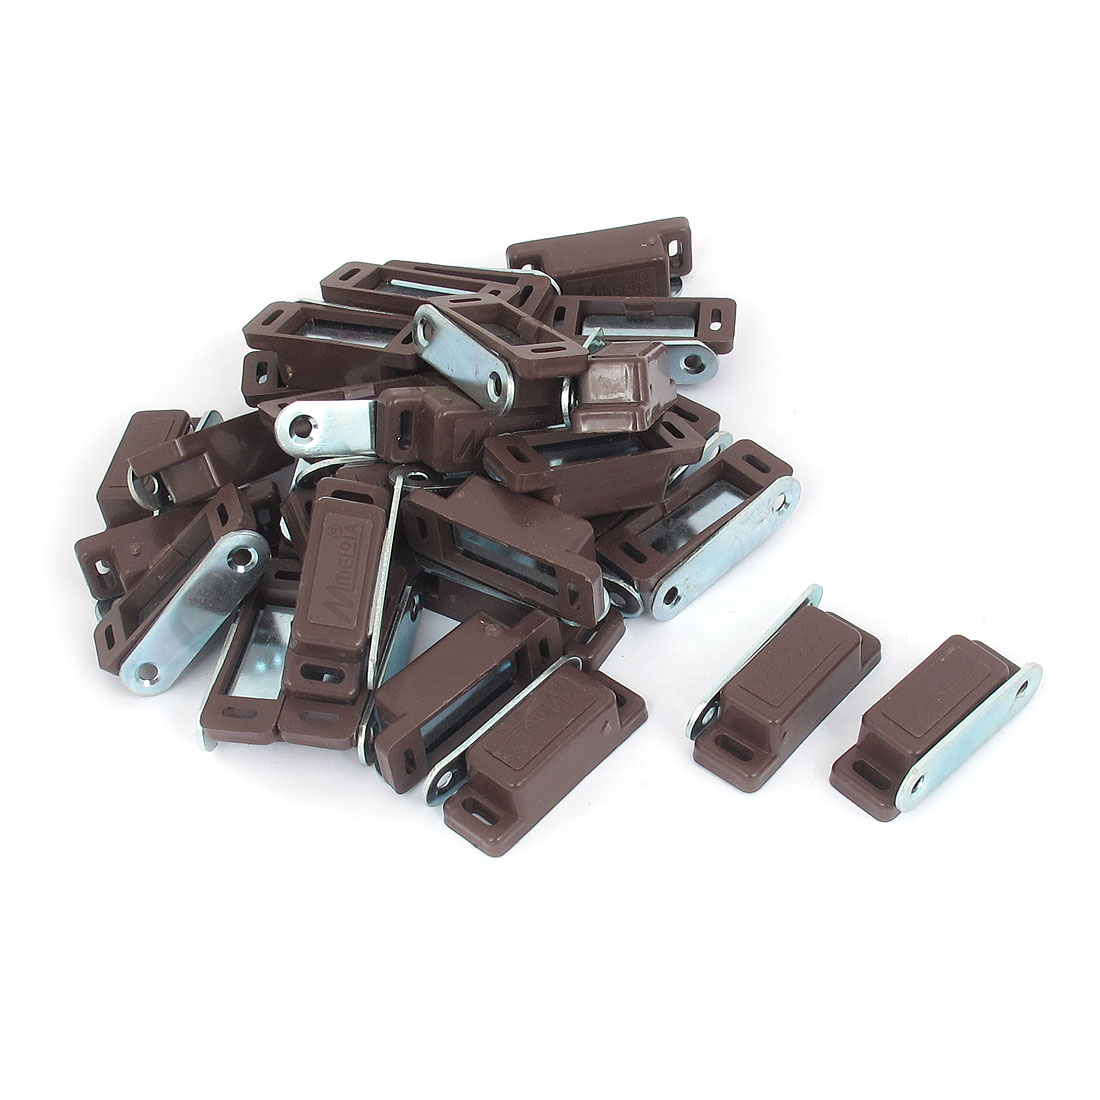 Cabinet Door Plastic Magnetic Catch Latch Brown 46mm Length 30pcs